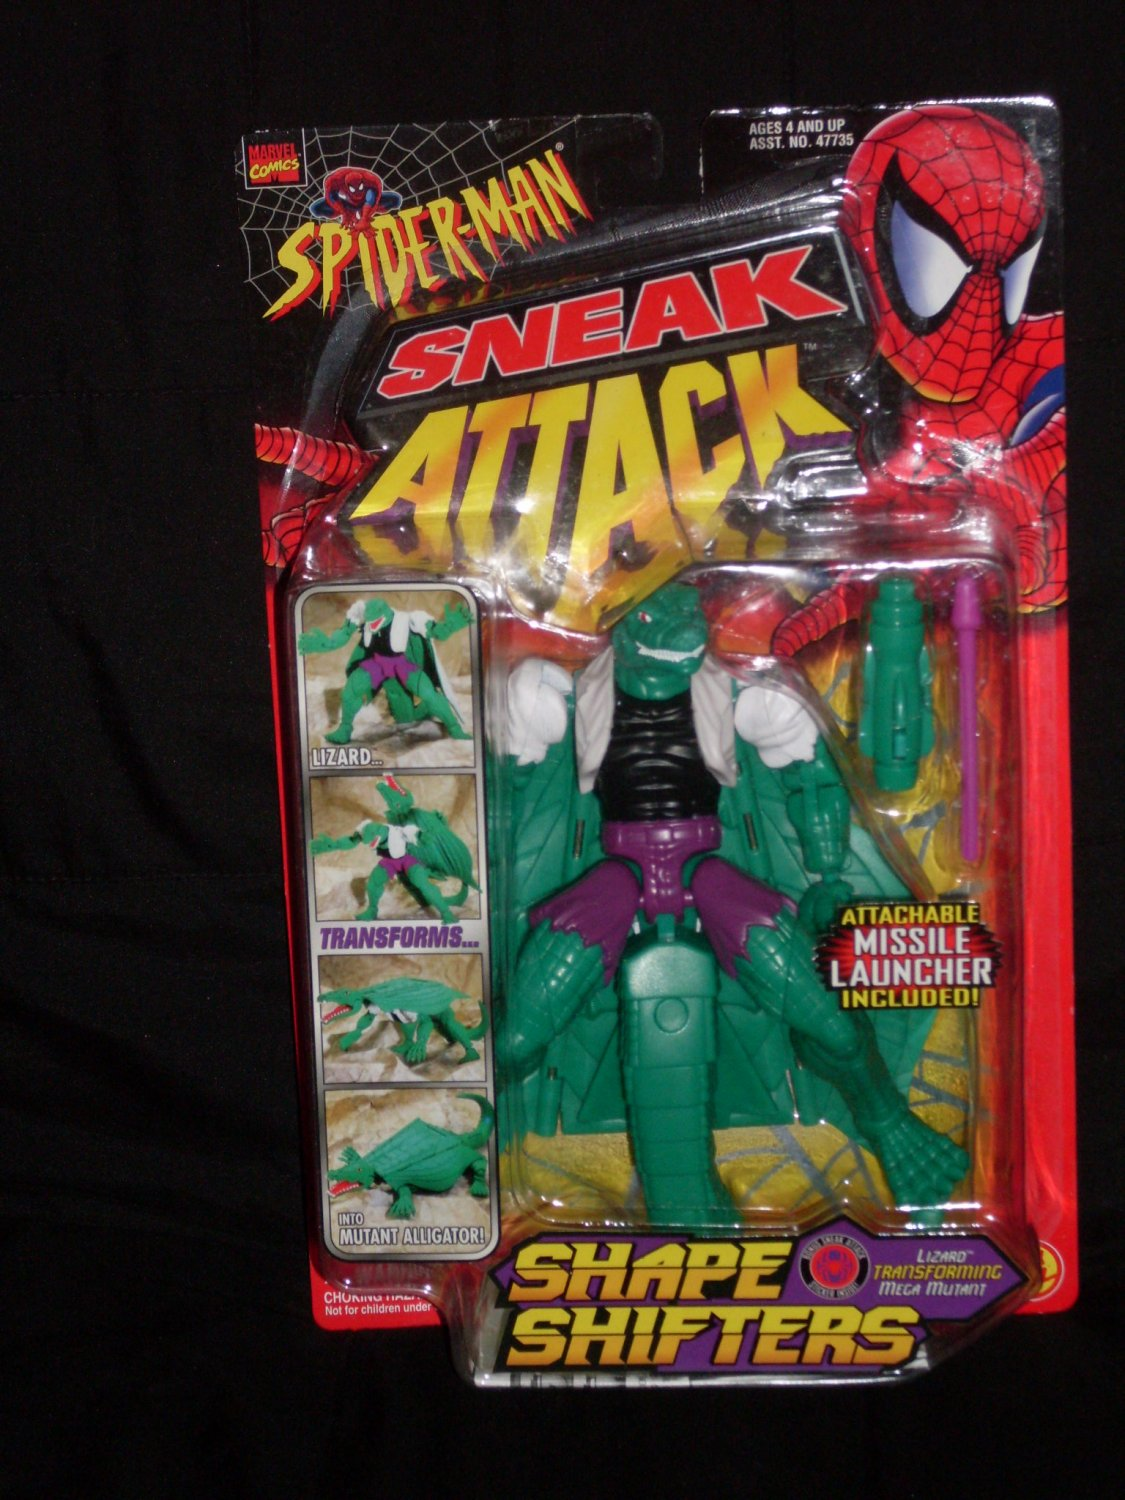 LIZARD SHAPE SHIFTERS FROM SNEAK ATTACK SERIES (1998) Added Shipping Cost Outside USA